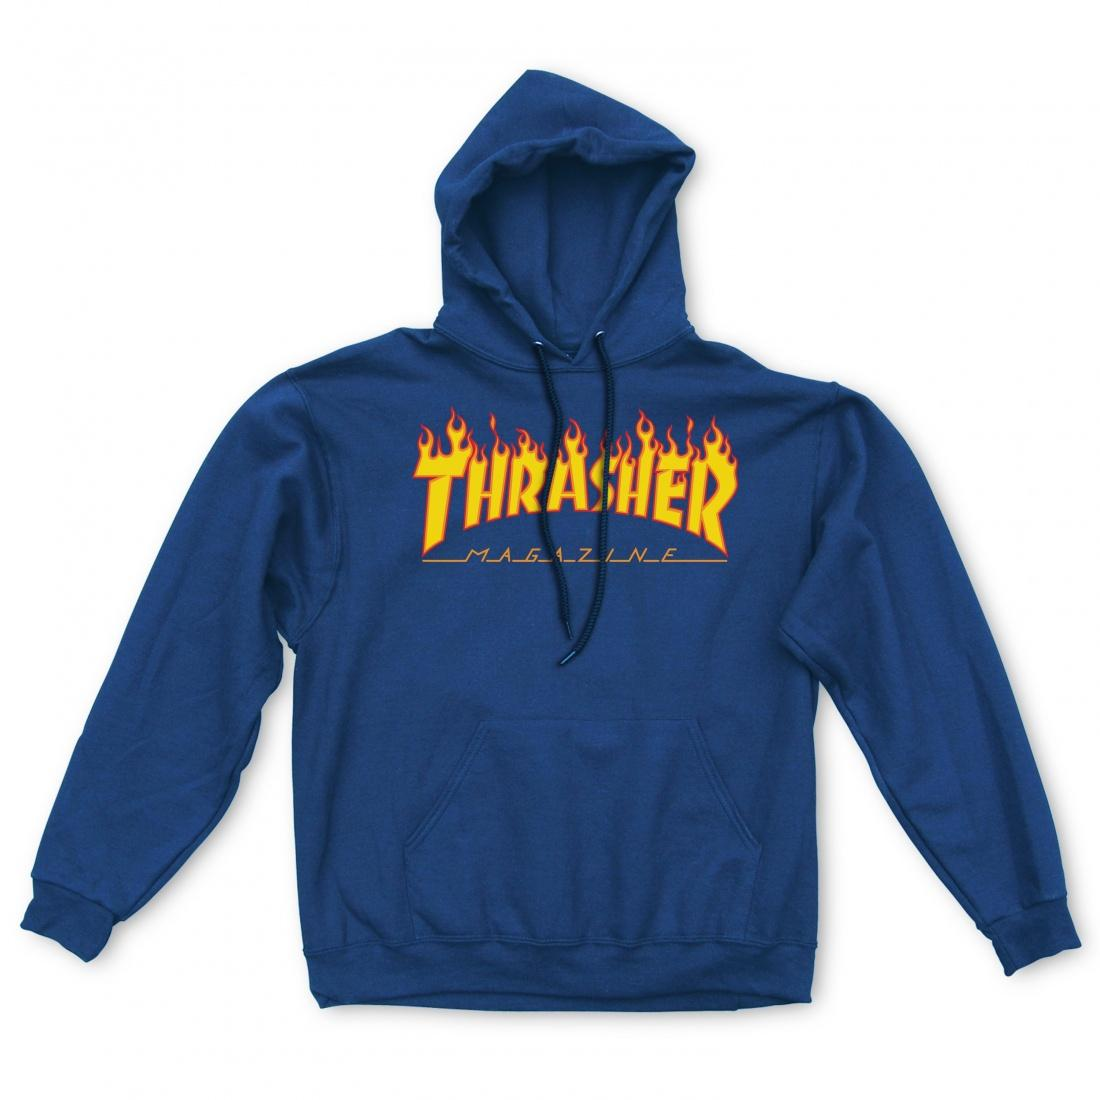 THRASHER Толстовка Thrasher Flame Logo Hood Navy Blue XL thrasher футболка thrasher flame logo white xl